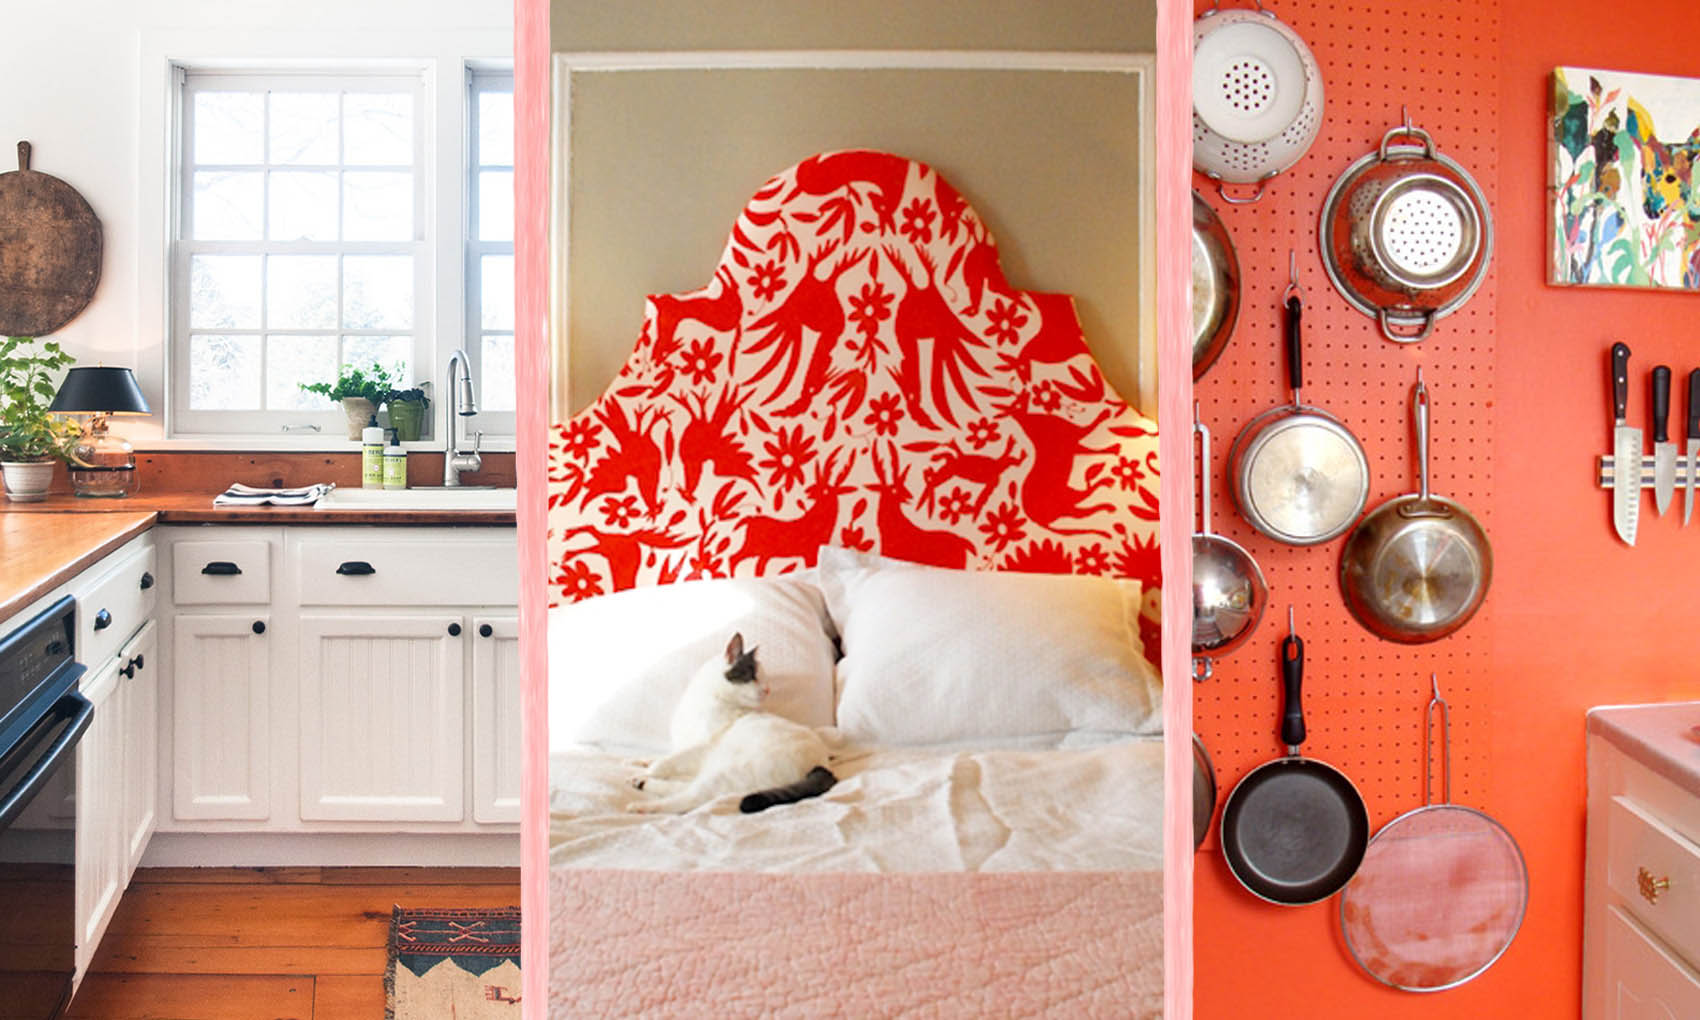 . What Would You Tell Your Younger Self About Decorating Your Home